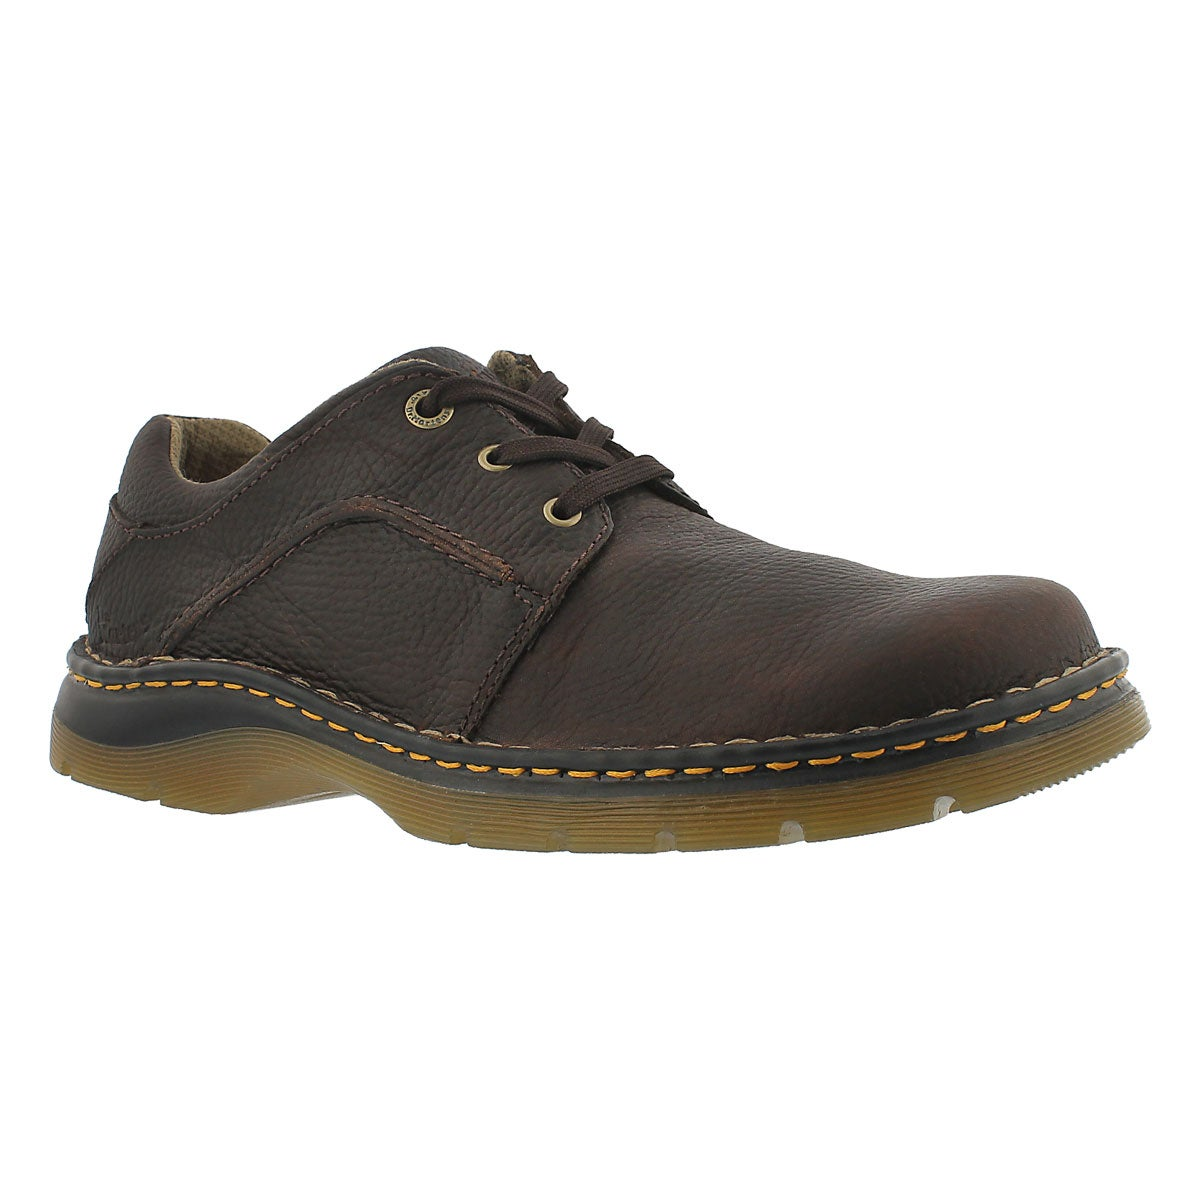 Mns Gibson bark 3 eye oxford